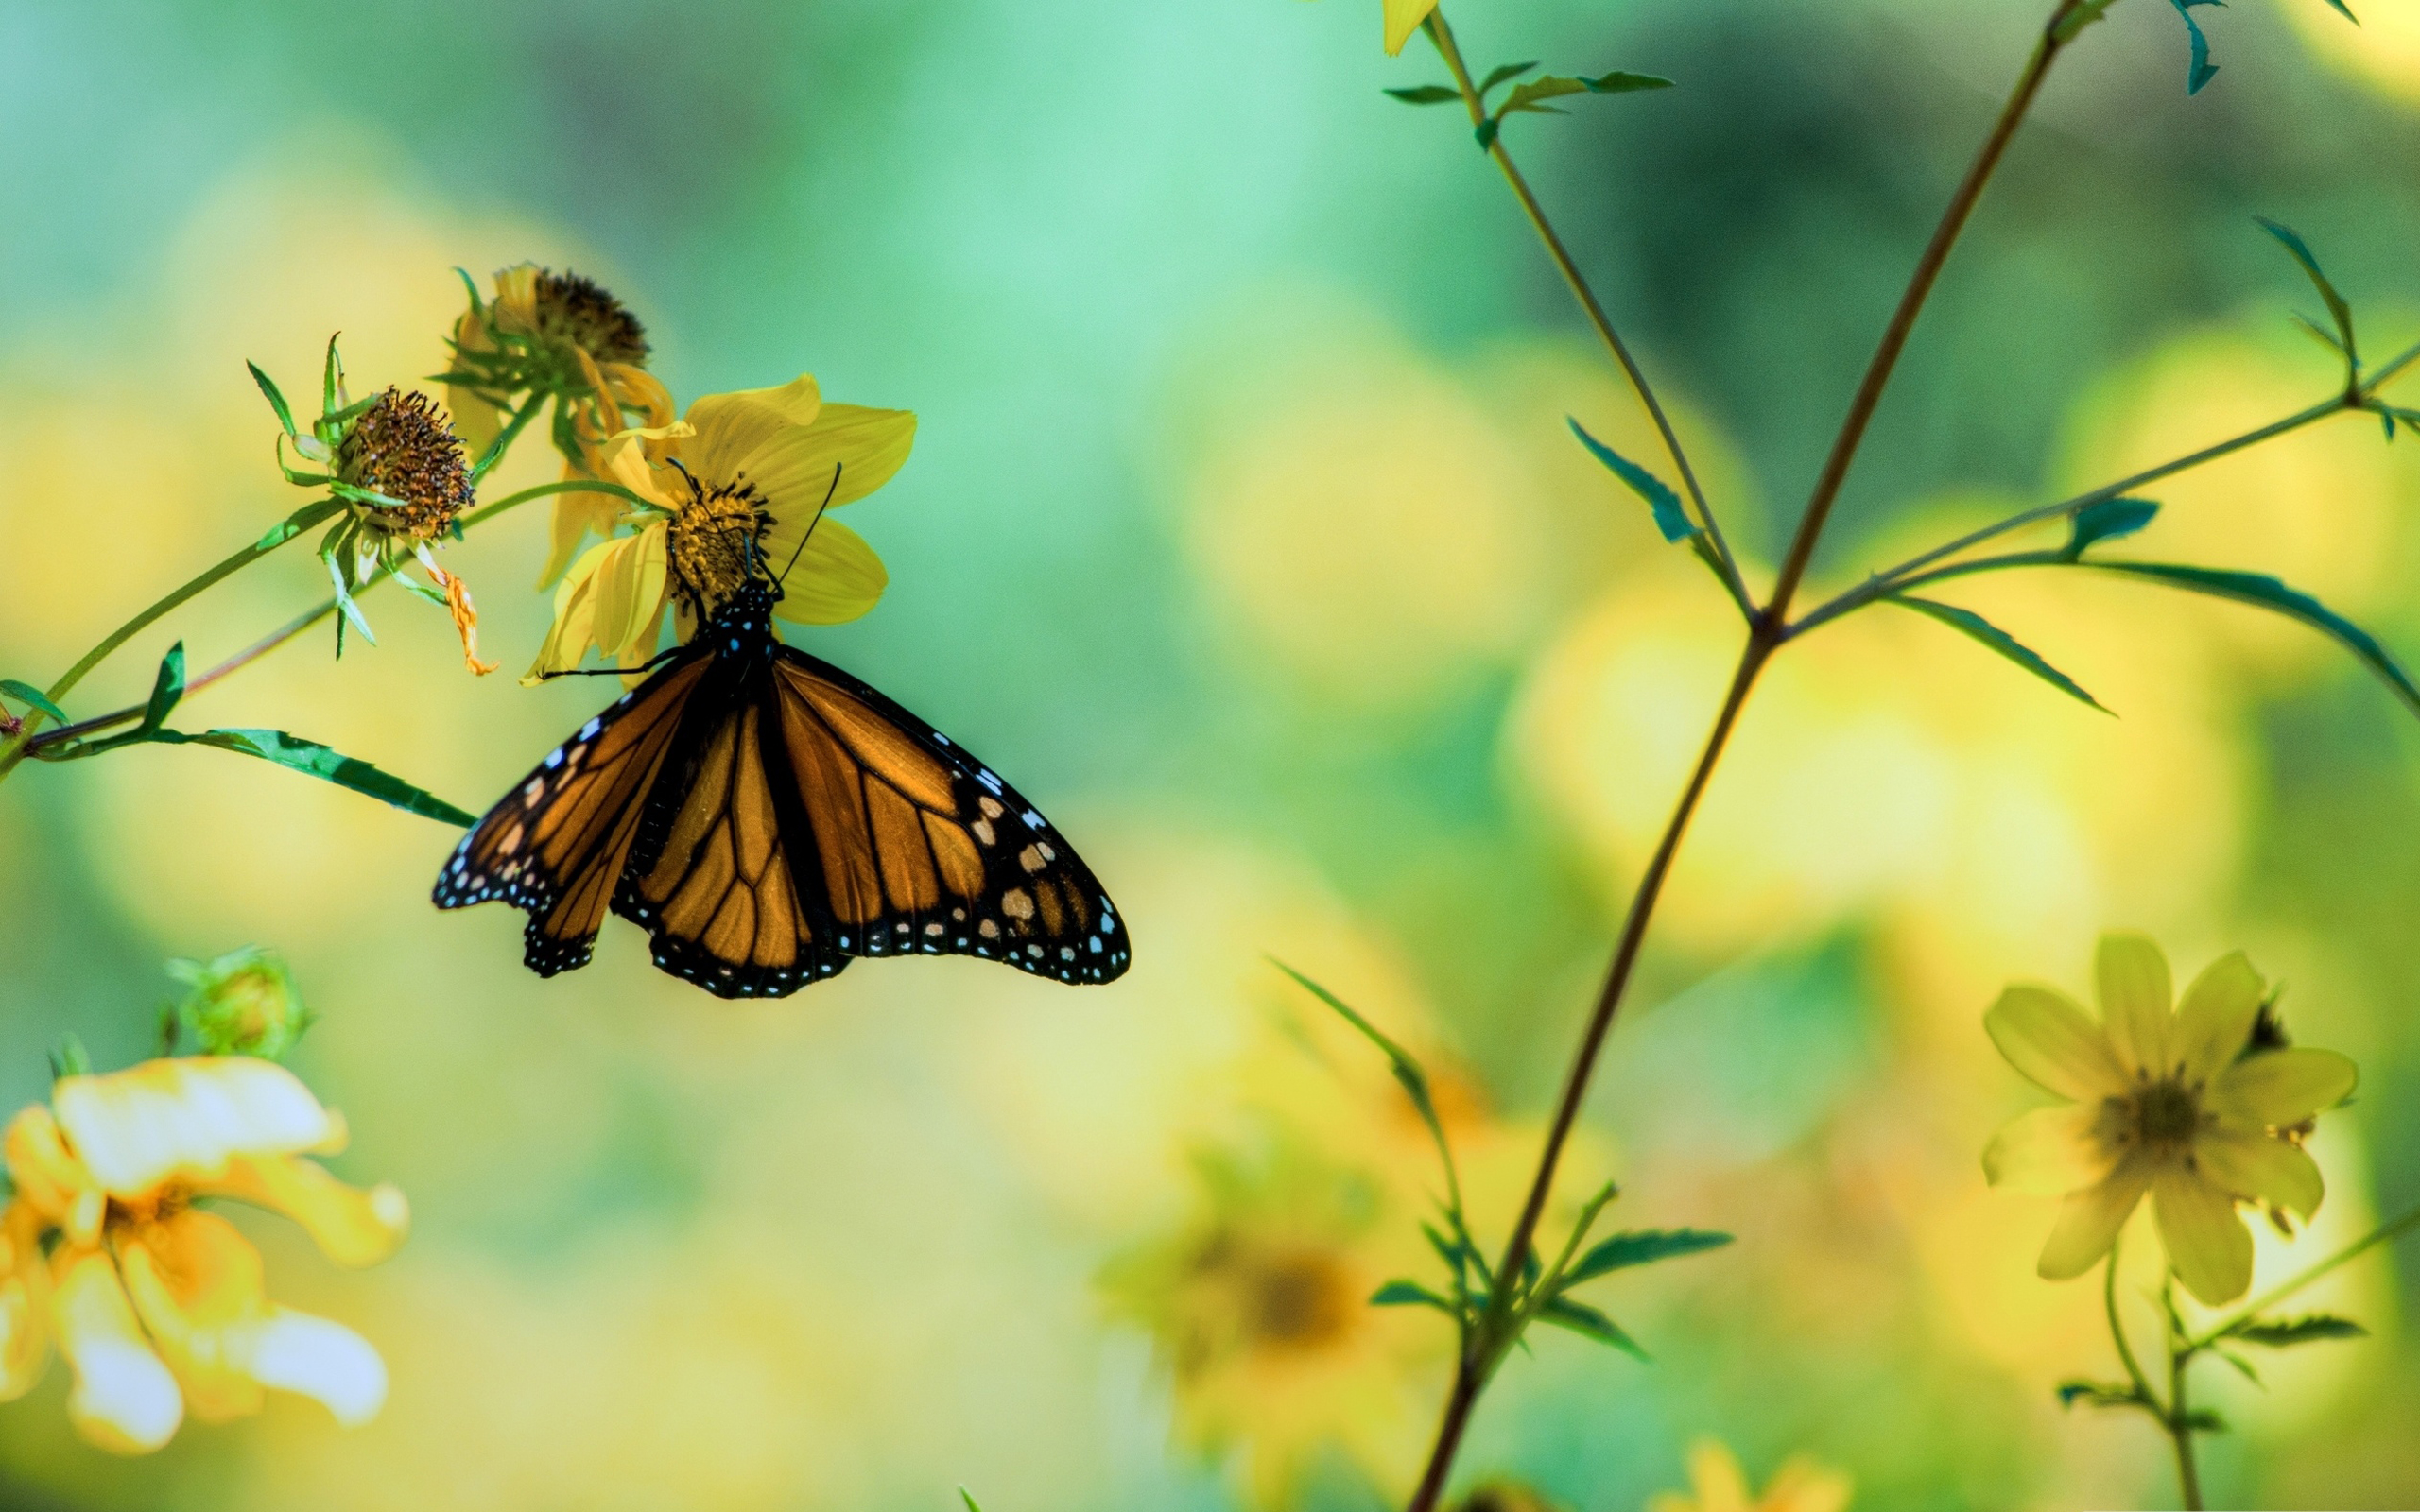 Monarch Butterfly Backgrounds wallpaper wallpaper hd background 2560x1600